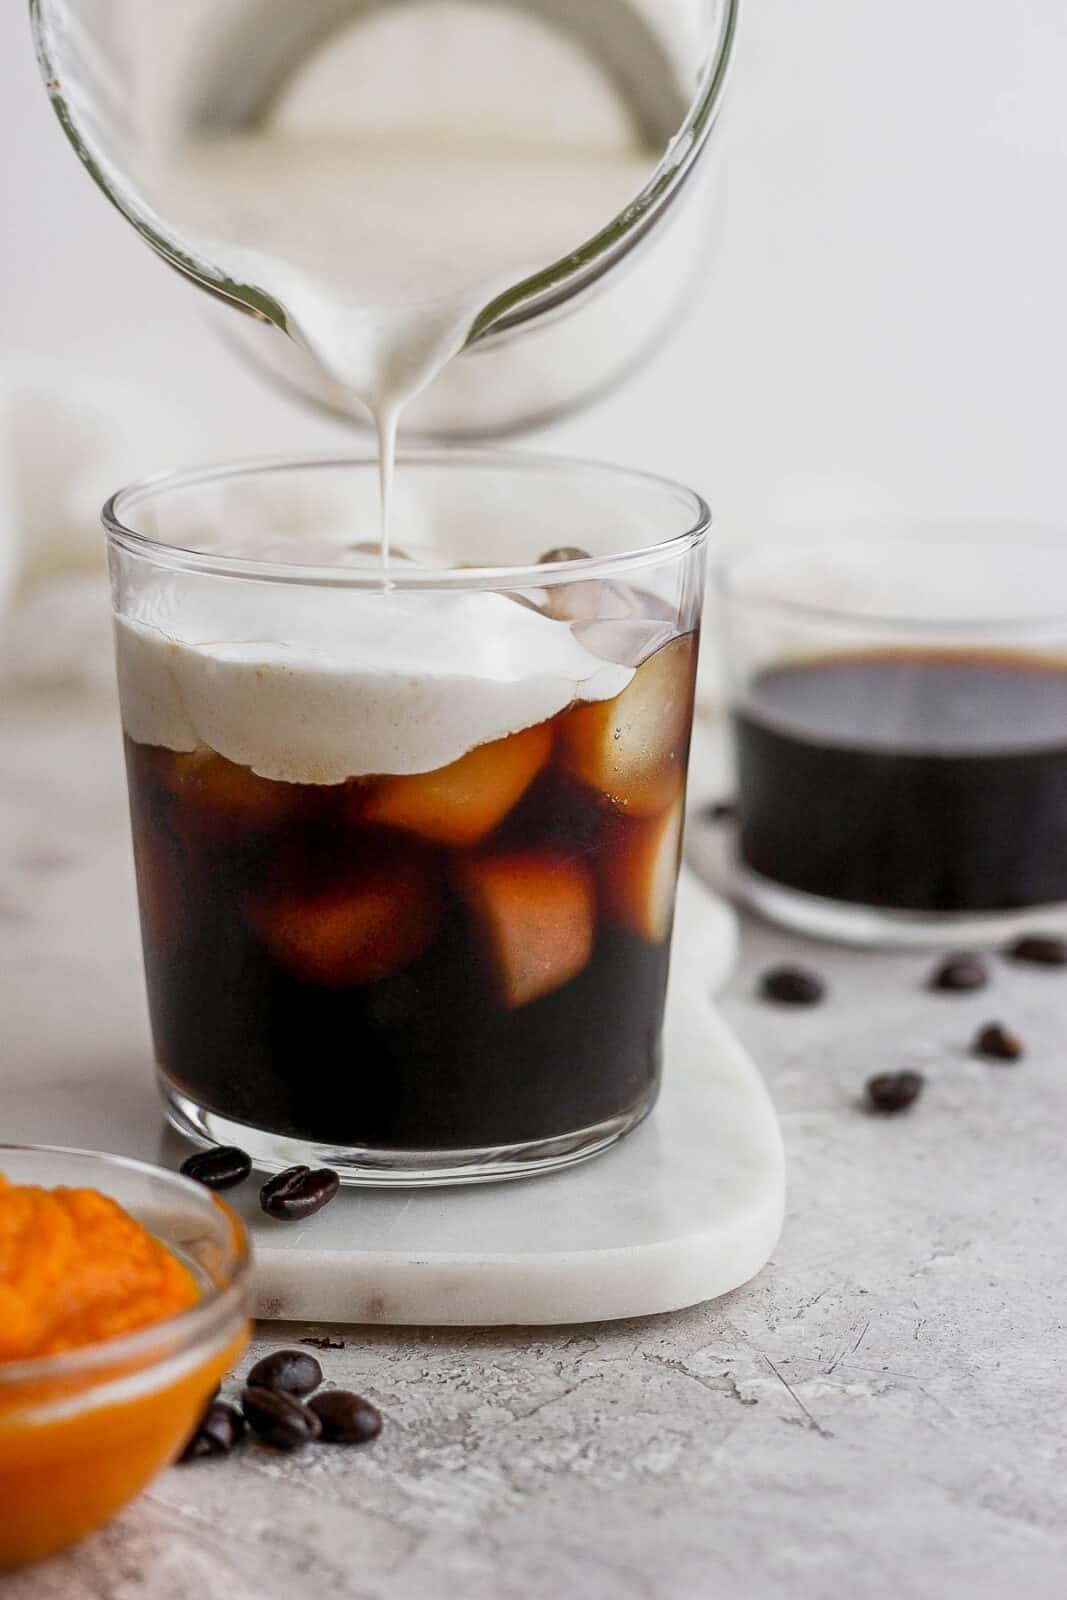 Someone pouring pumpkin cream over a glass of cold brew coffee.